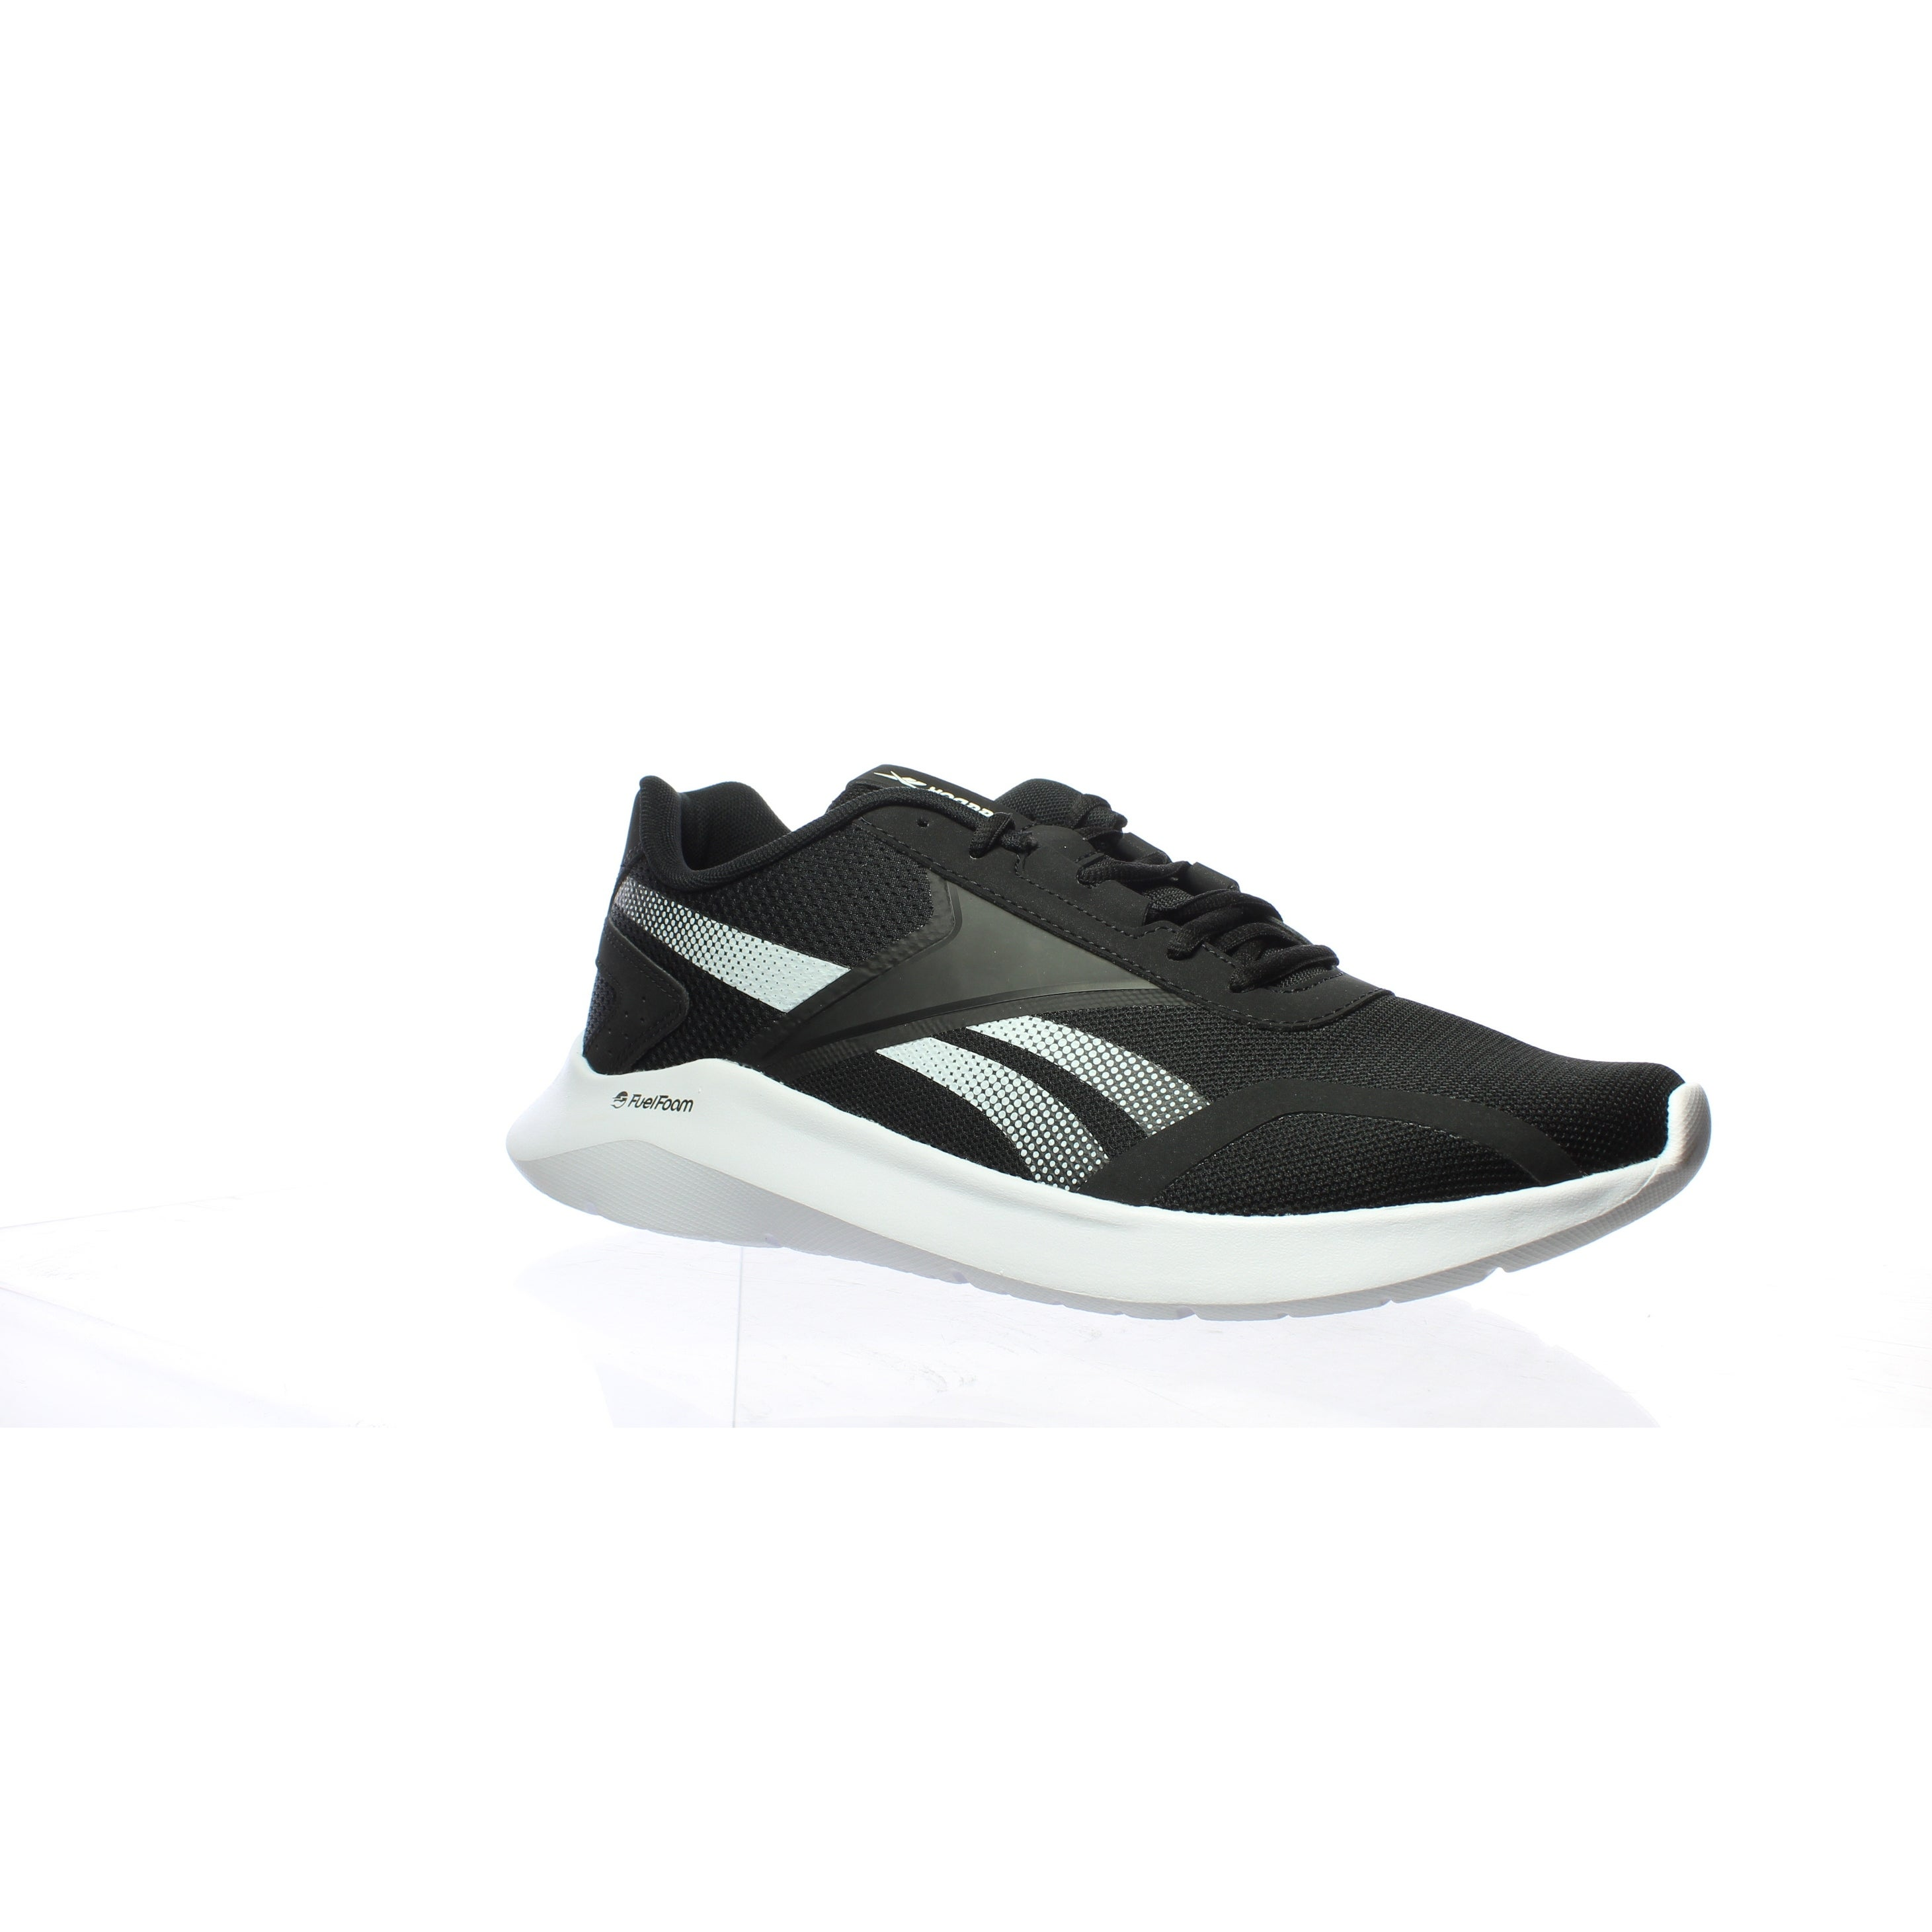 Buy Size 8.5 Men's Athletic Shoes Online at Overstock | Our